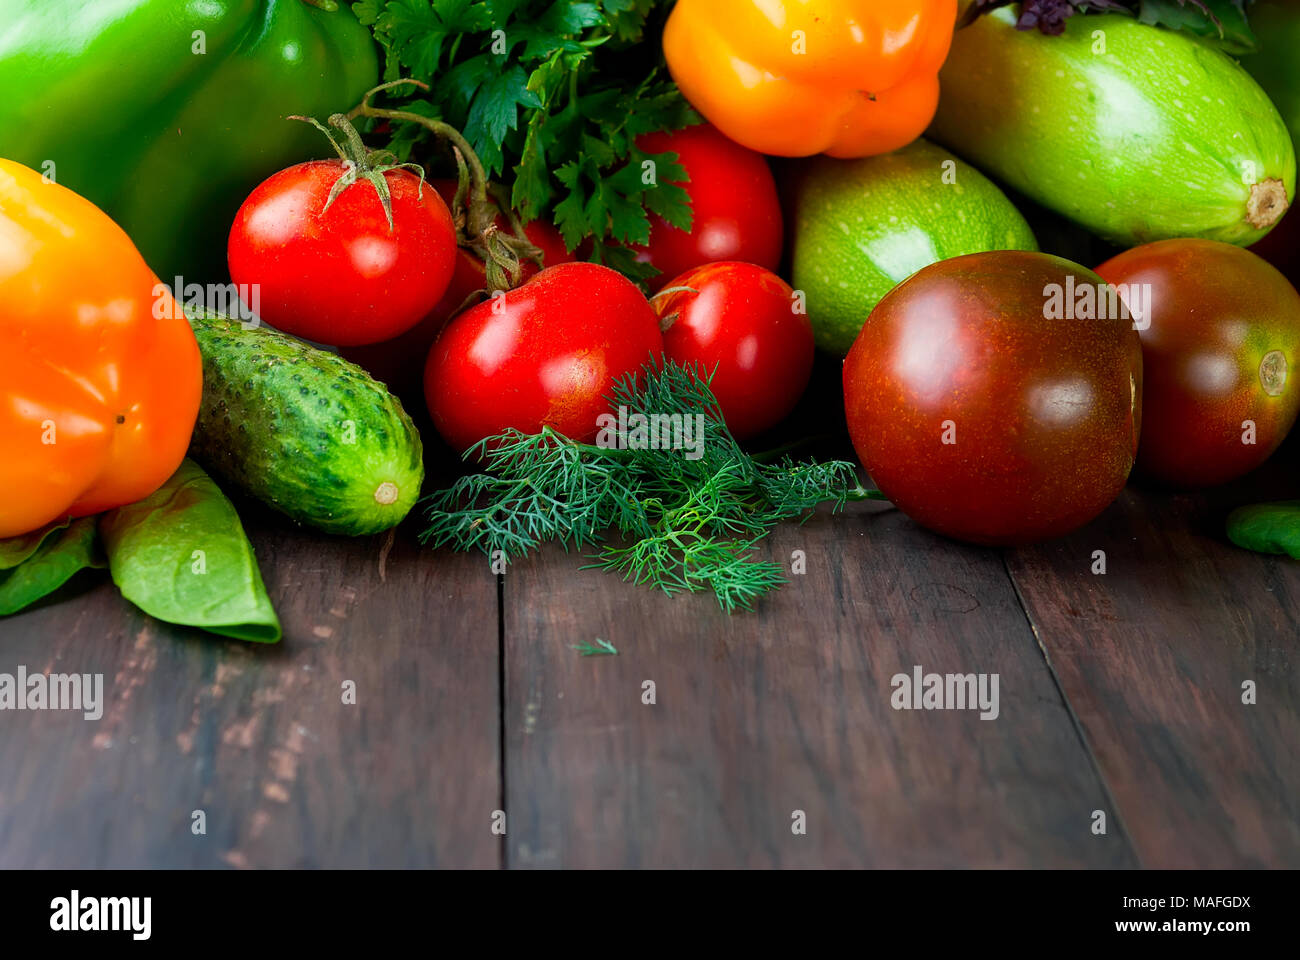 green and red color vegetables,  tomatoes, cucumber, peppers, fragrant herbs on an old wooden table, Top view, copy space Stock Photo